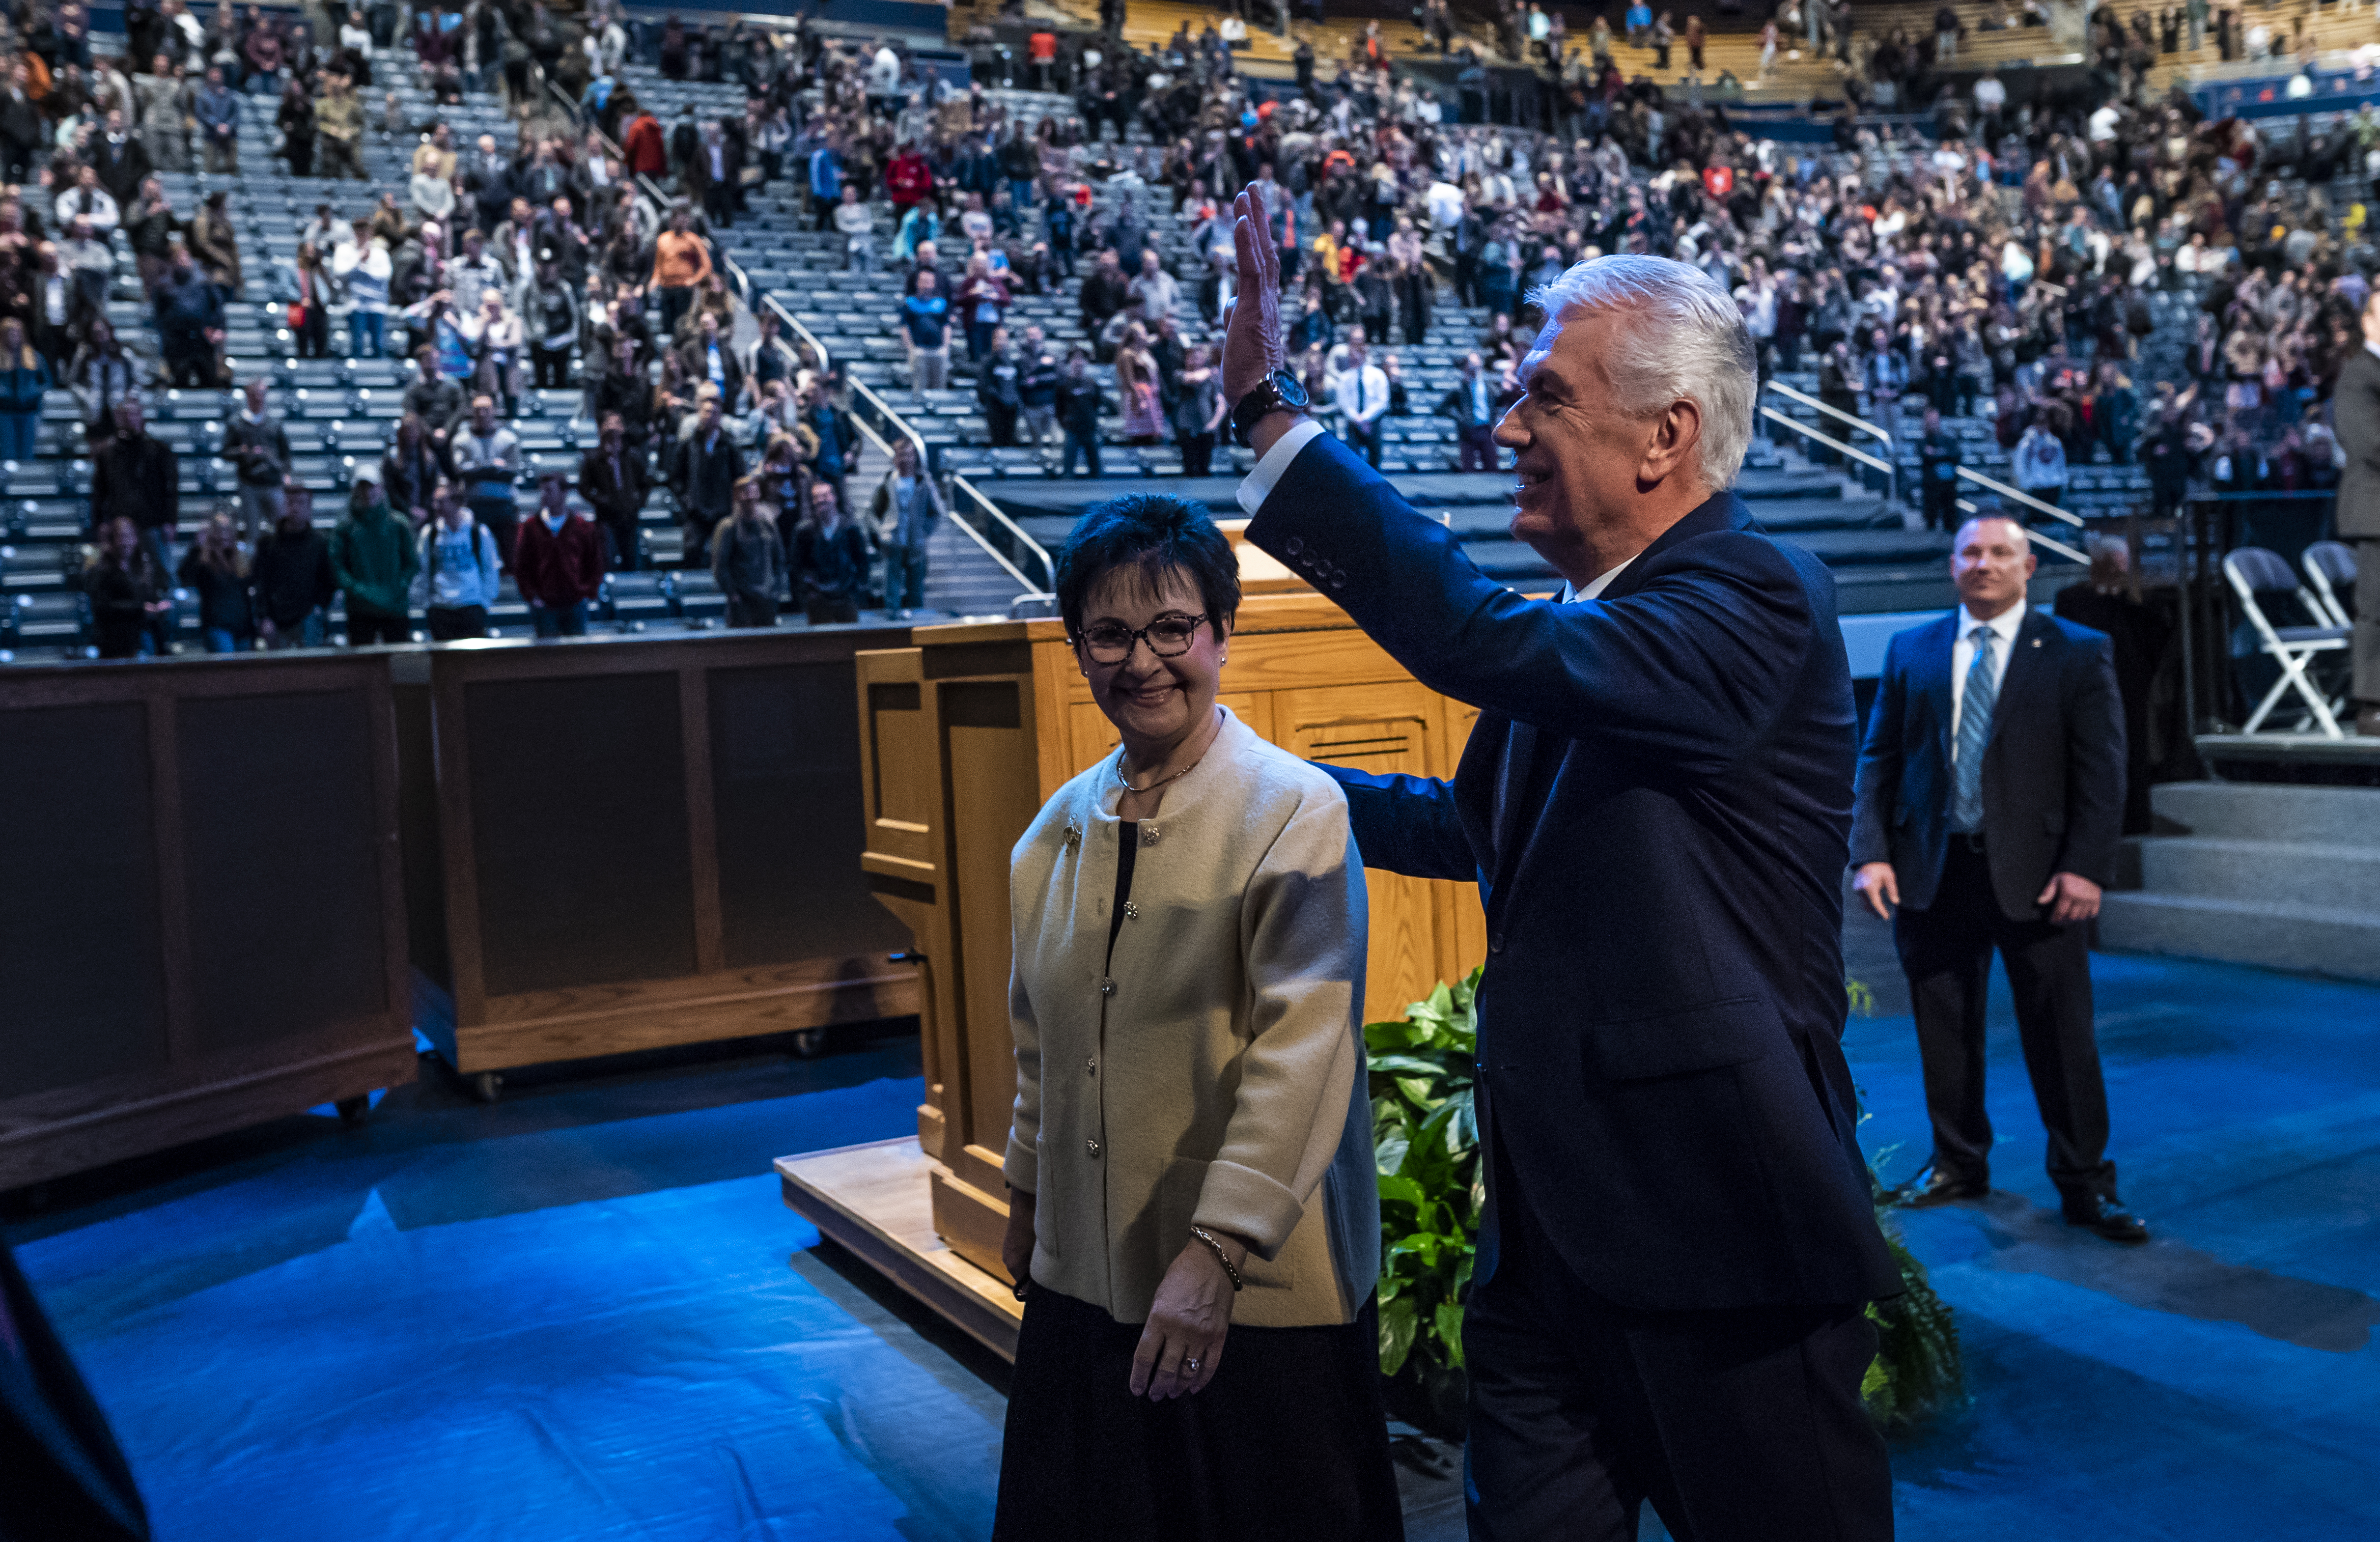 Elder Dieter F. Uchtdorf of the Quorum of the Twelve Apostles his wife Harriet R. Uchtdorf following a devotional on the BYU campus in Provo, Utah on Tuesday, Jan. 15, 2019.